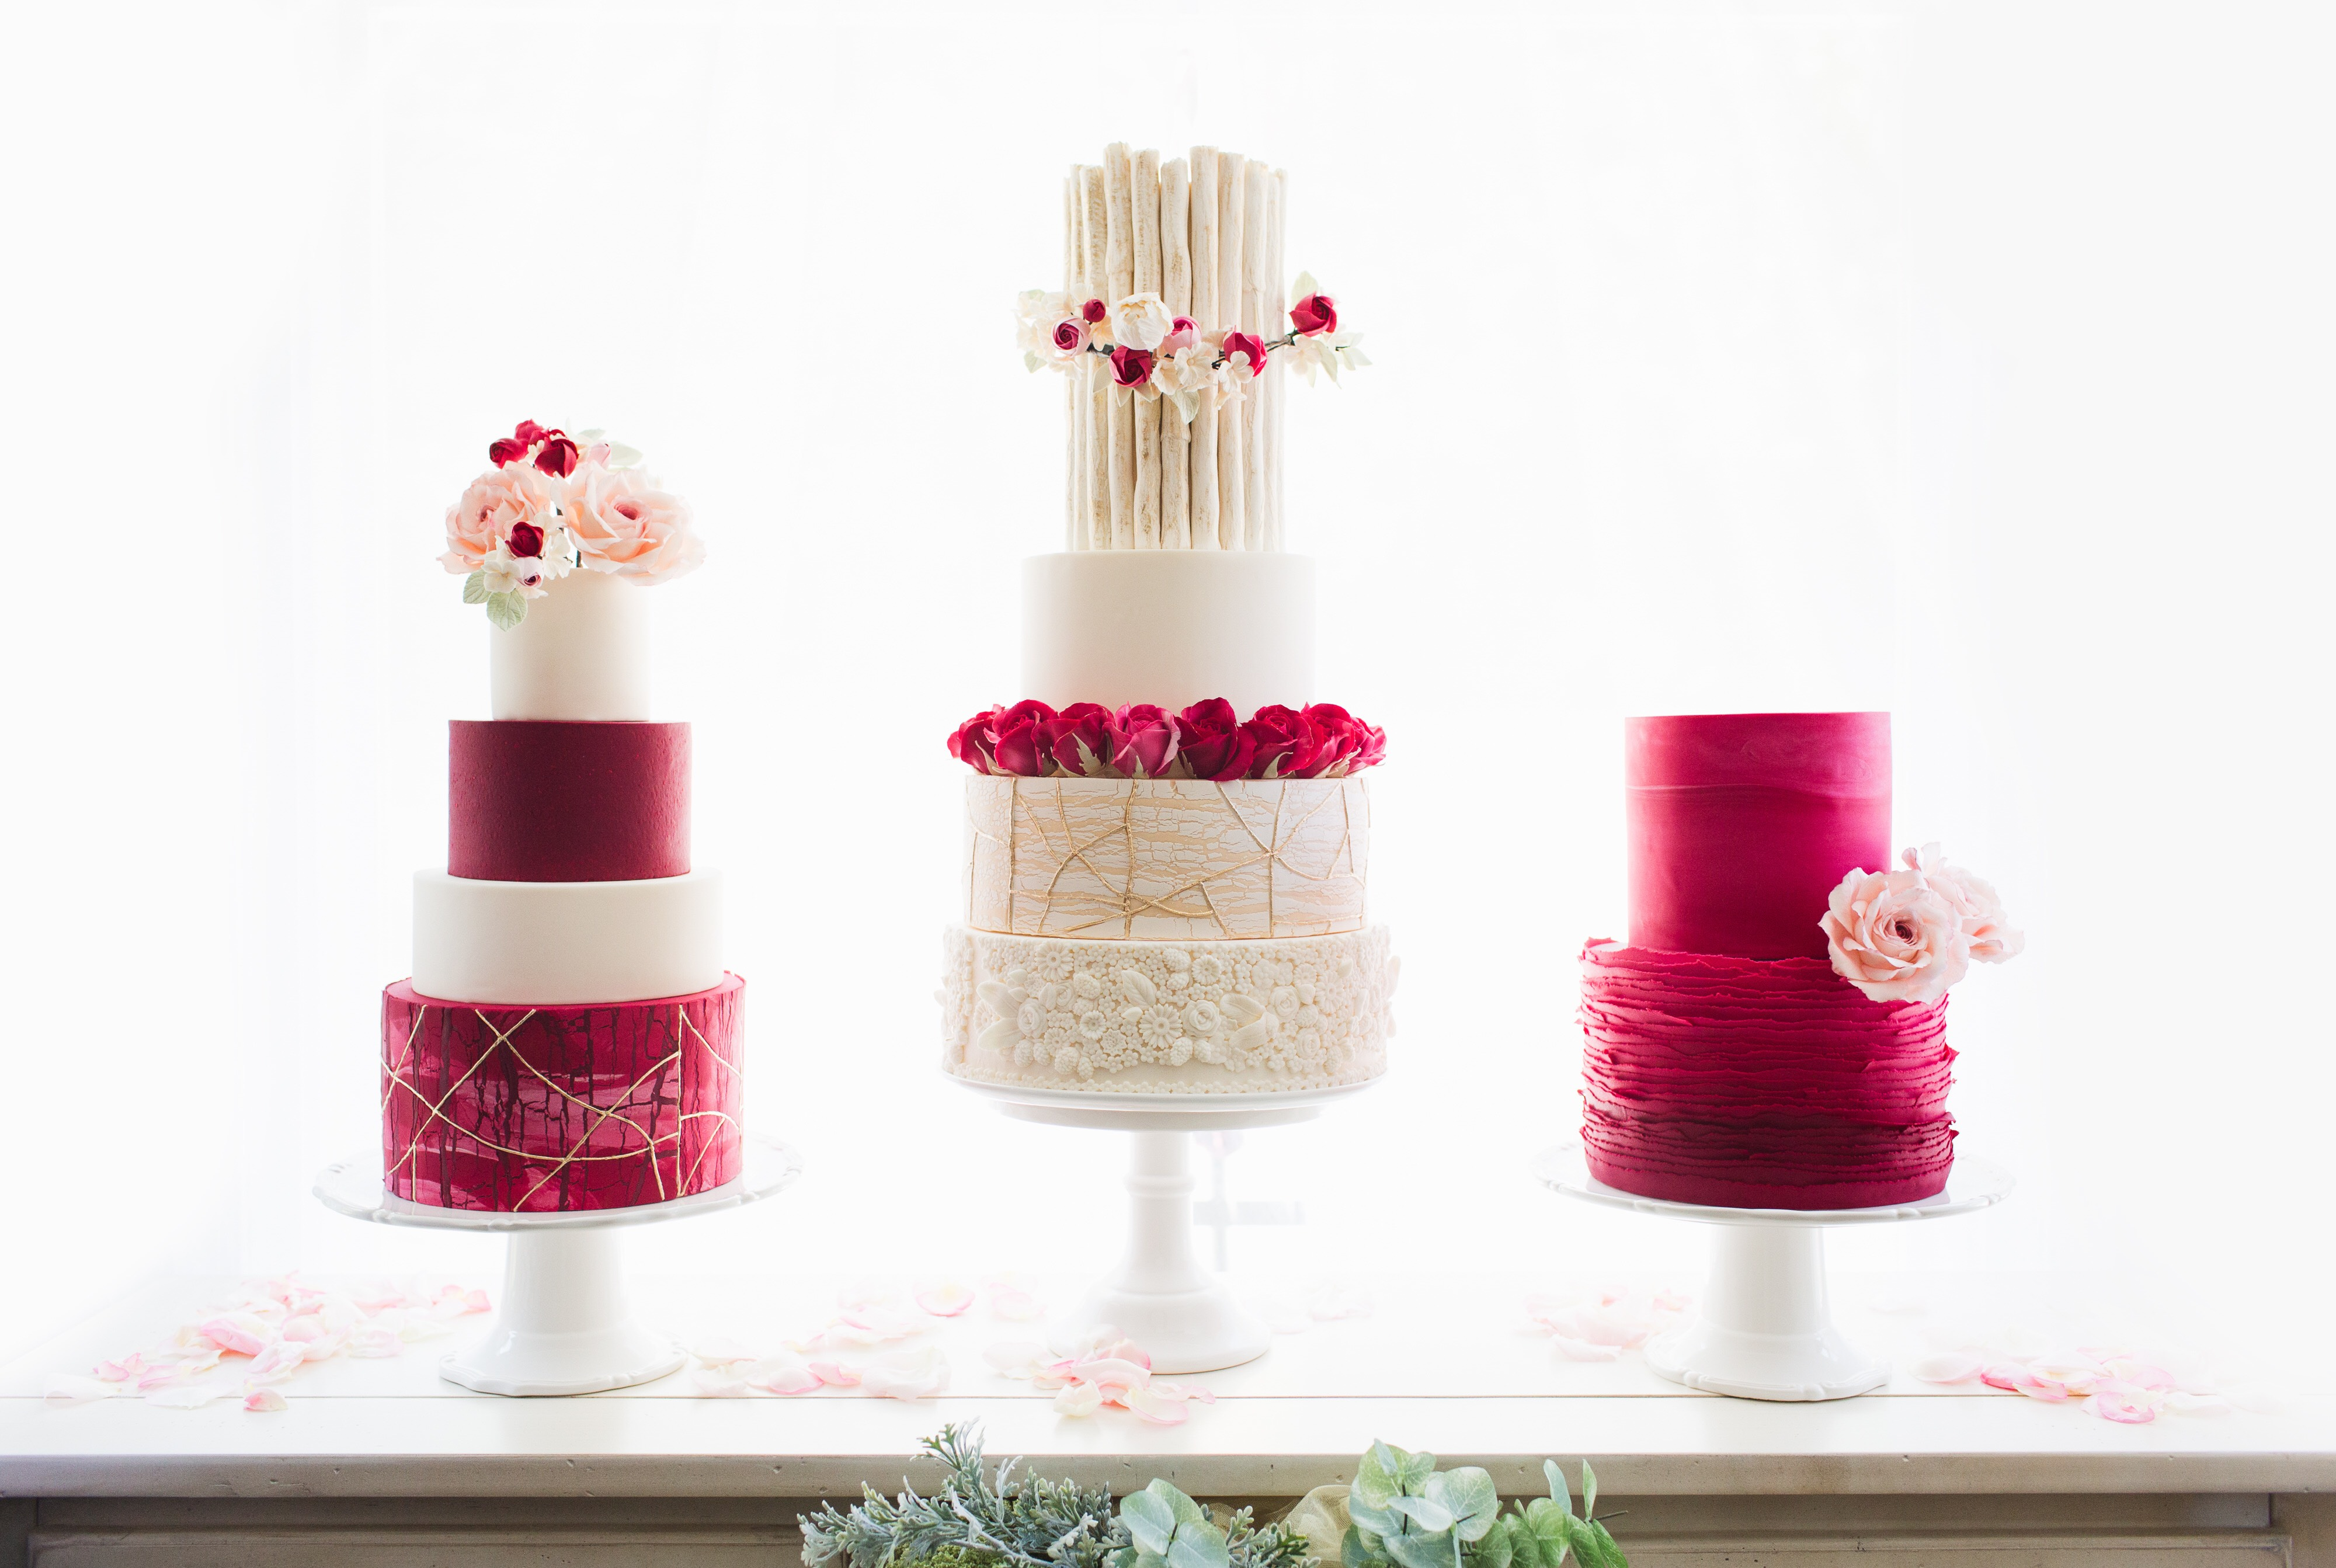 Red and ivory wedding cake trio with sugar roses